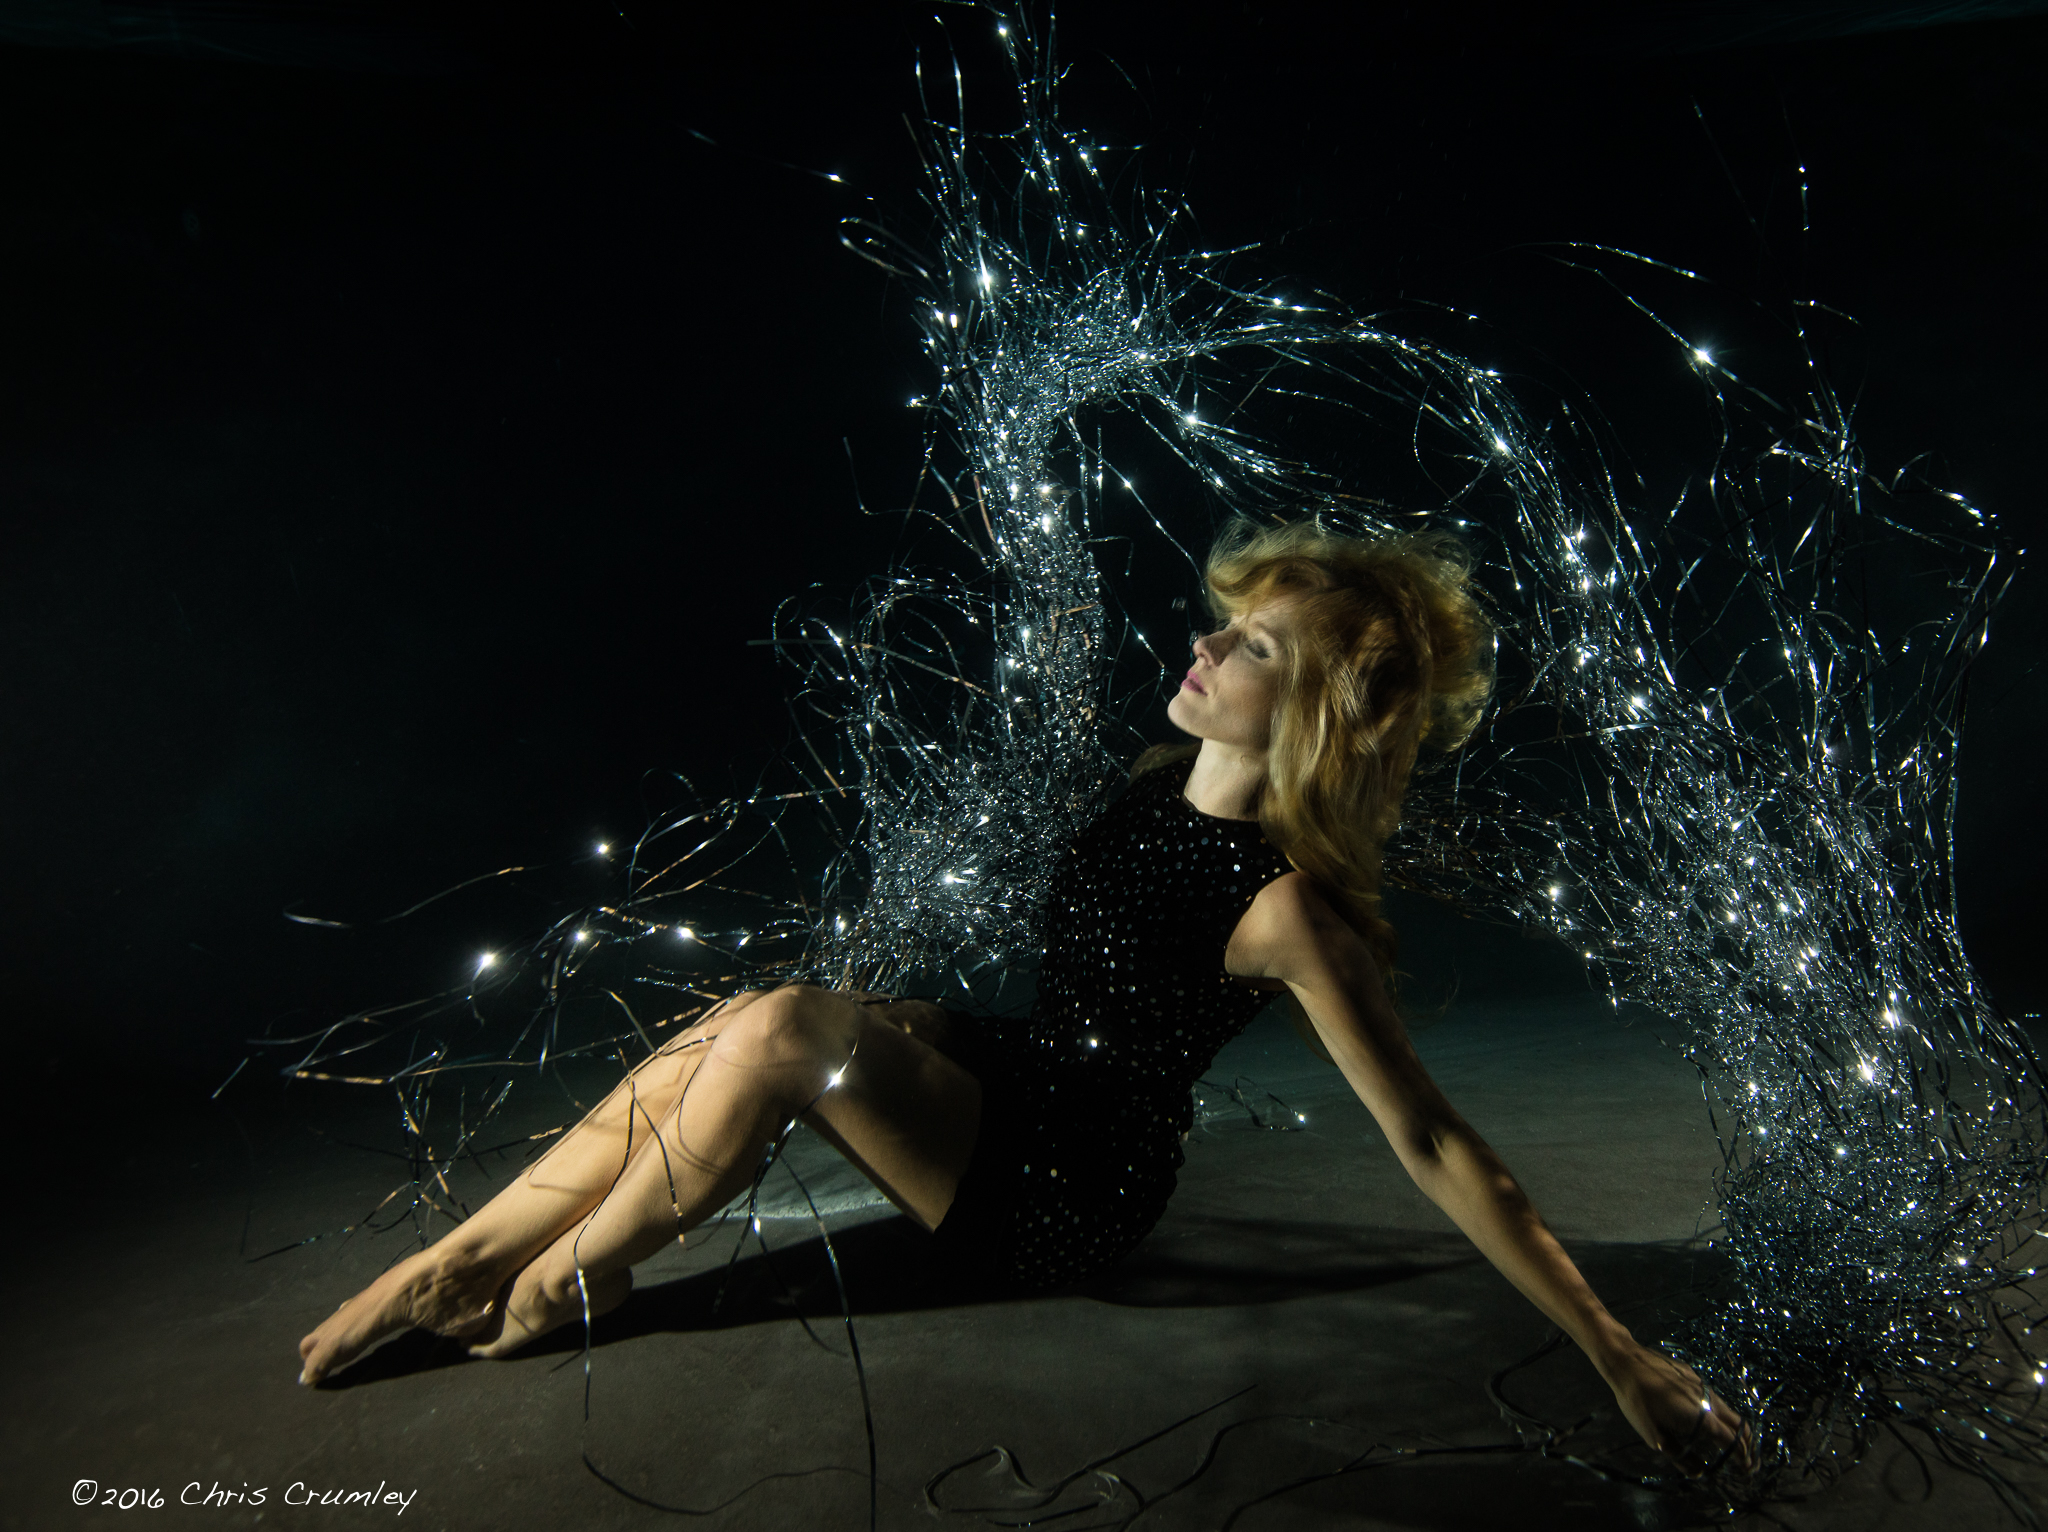 Kristi Sherk in black dress underwater